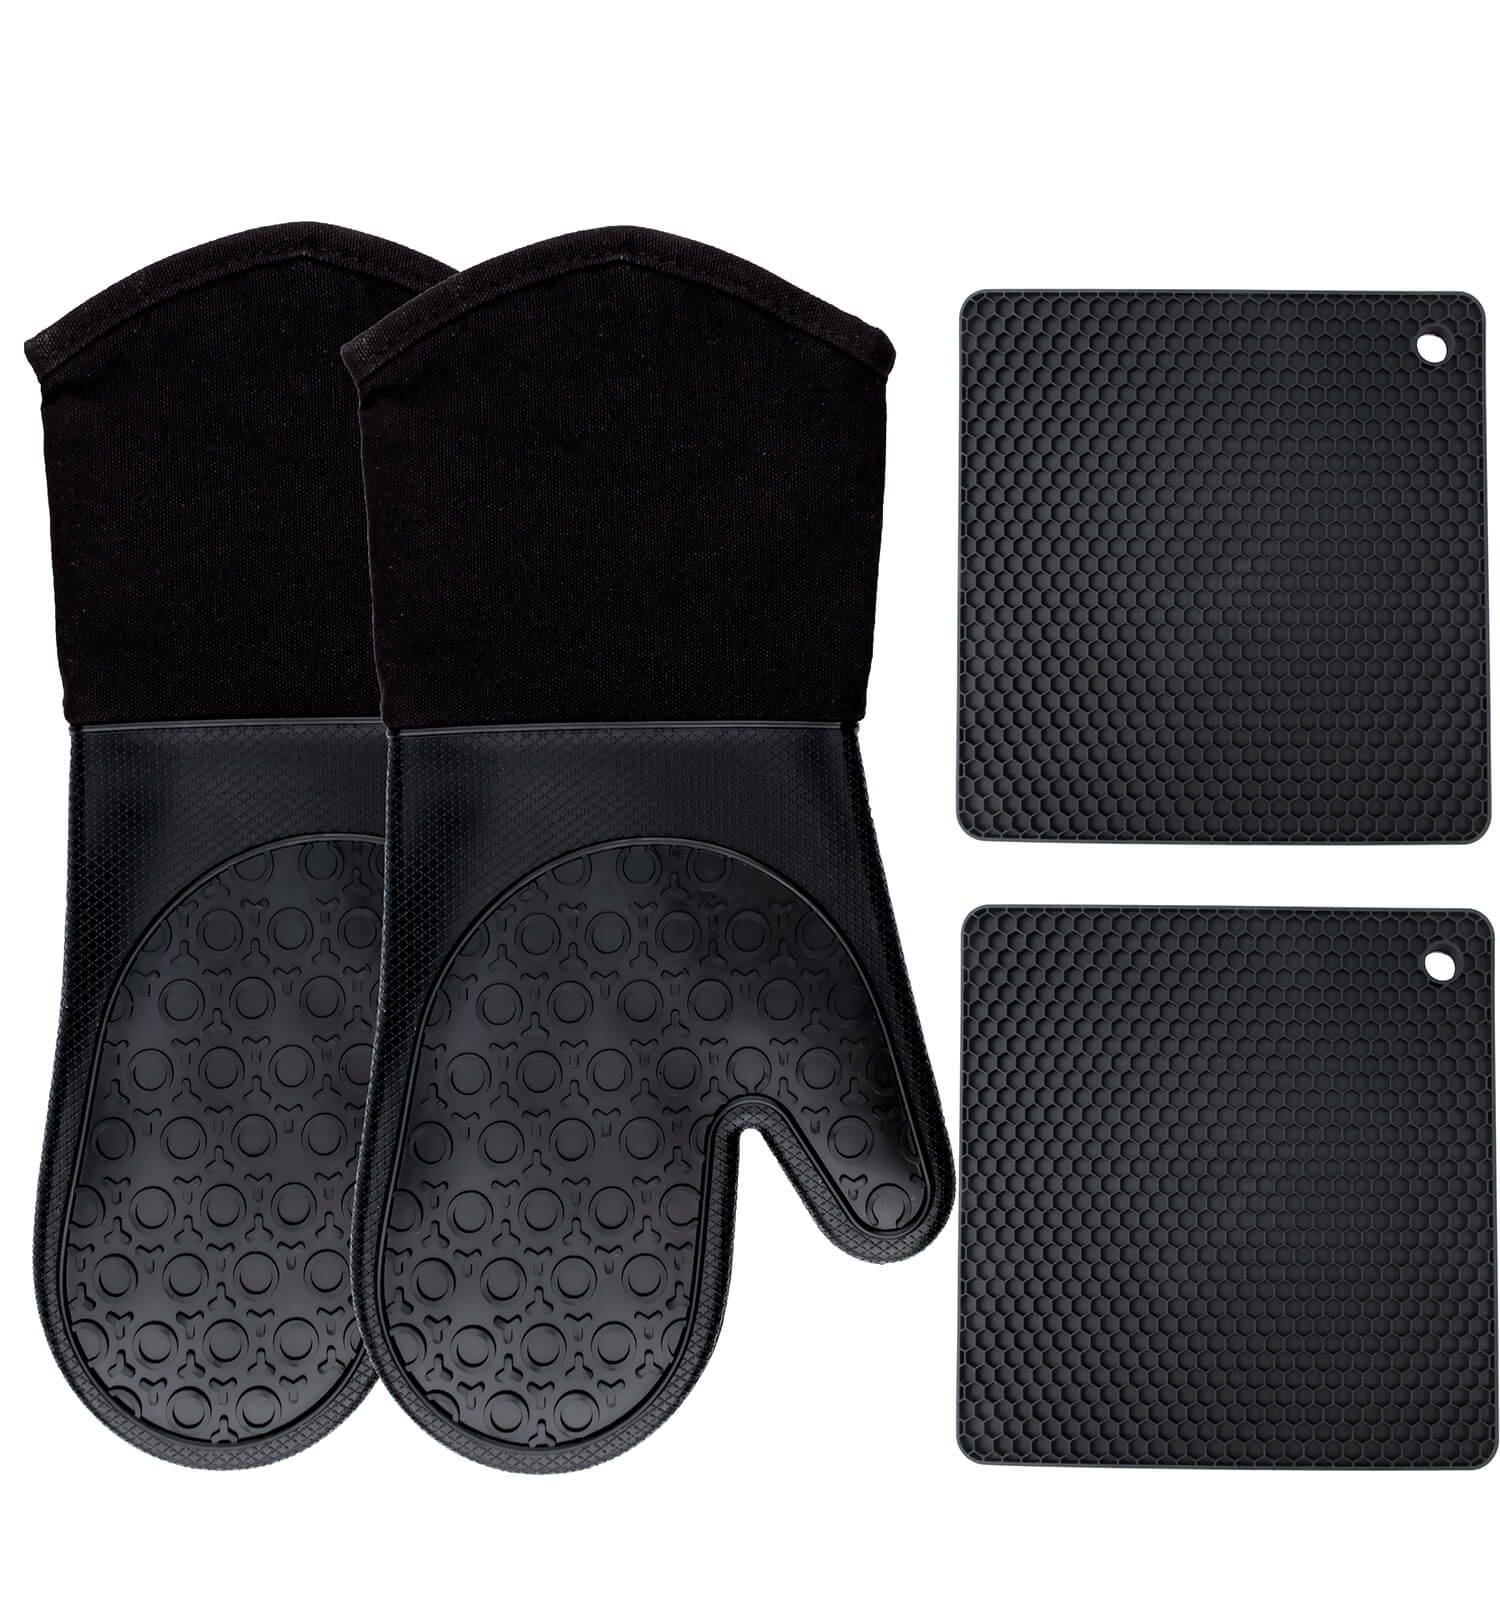 Homwe Silicone Oven Mitts and Potholders (4-Piece Sets), Kitchen Counter Safe Trivet Mats   Advanced Heat Resistant Oven Mitt, Non-Slip Textured Grip Pot Holders(Black) by HOMWE